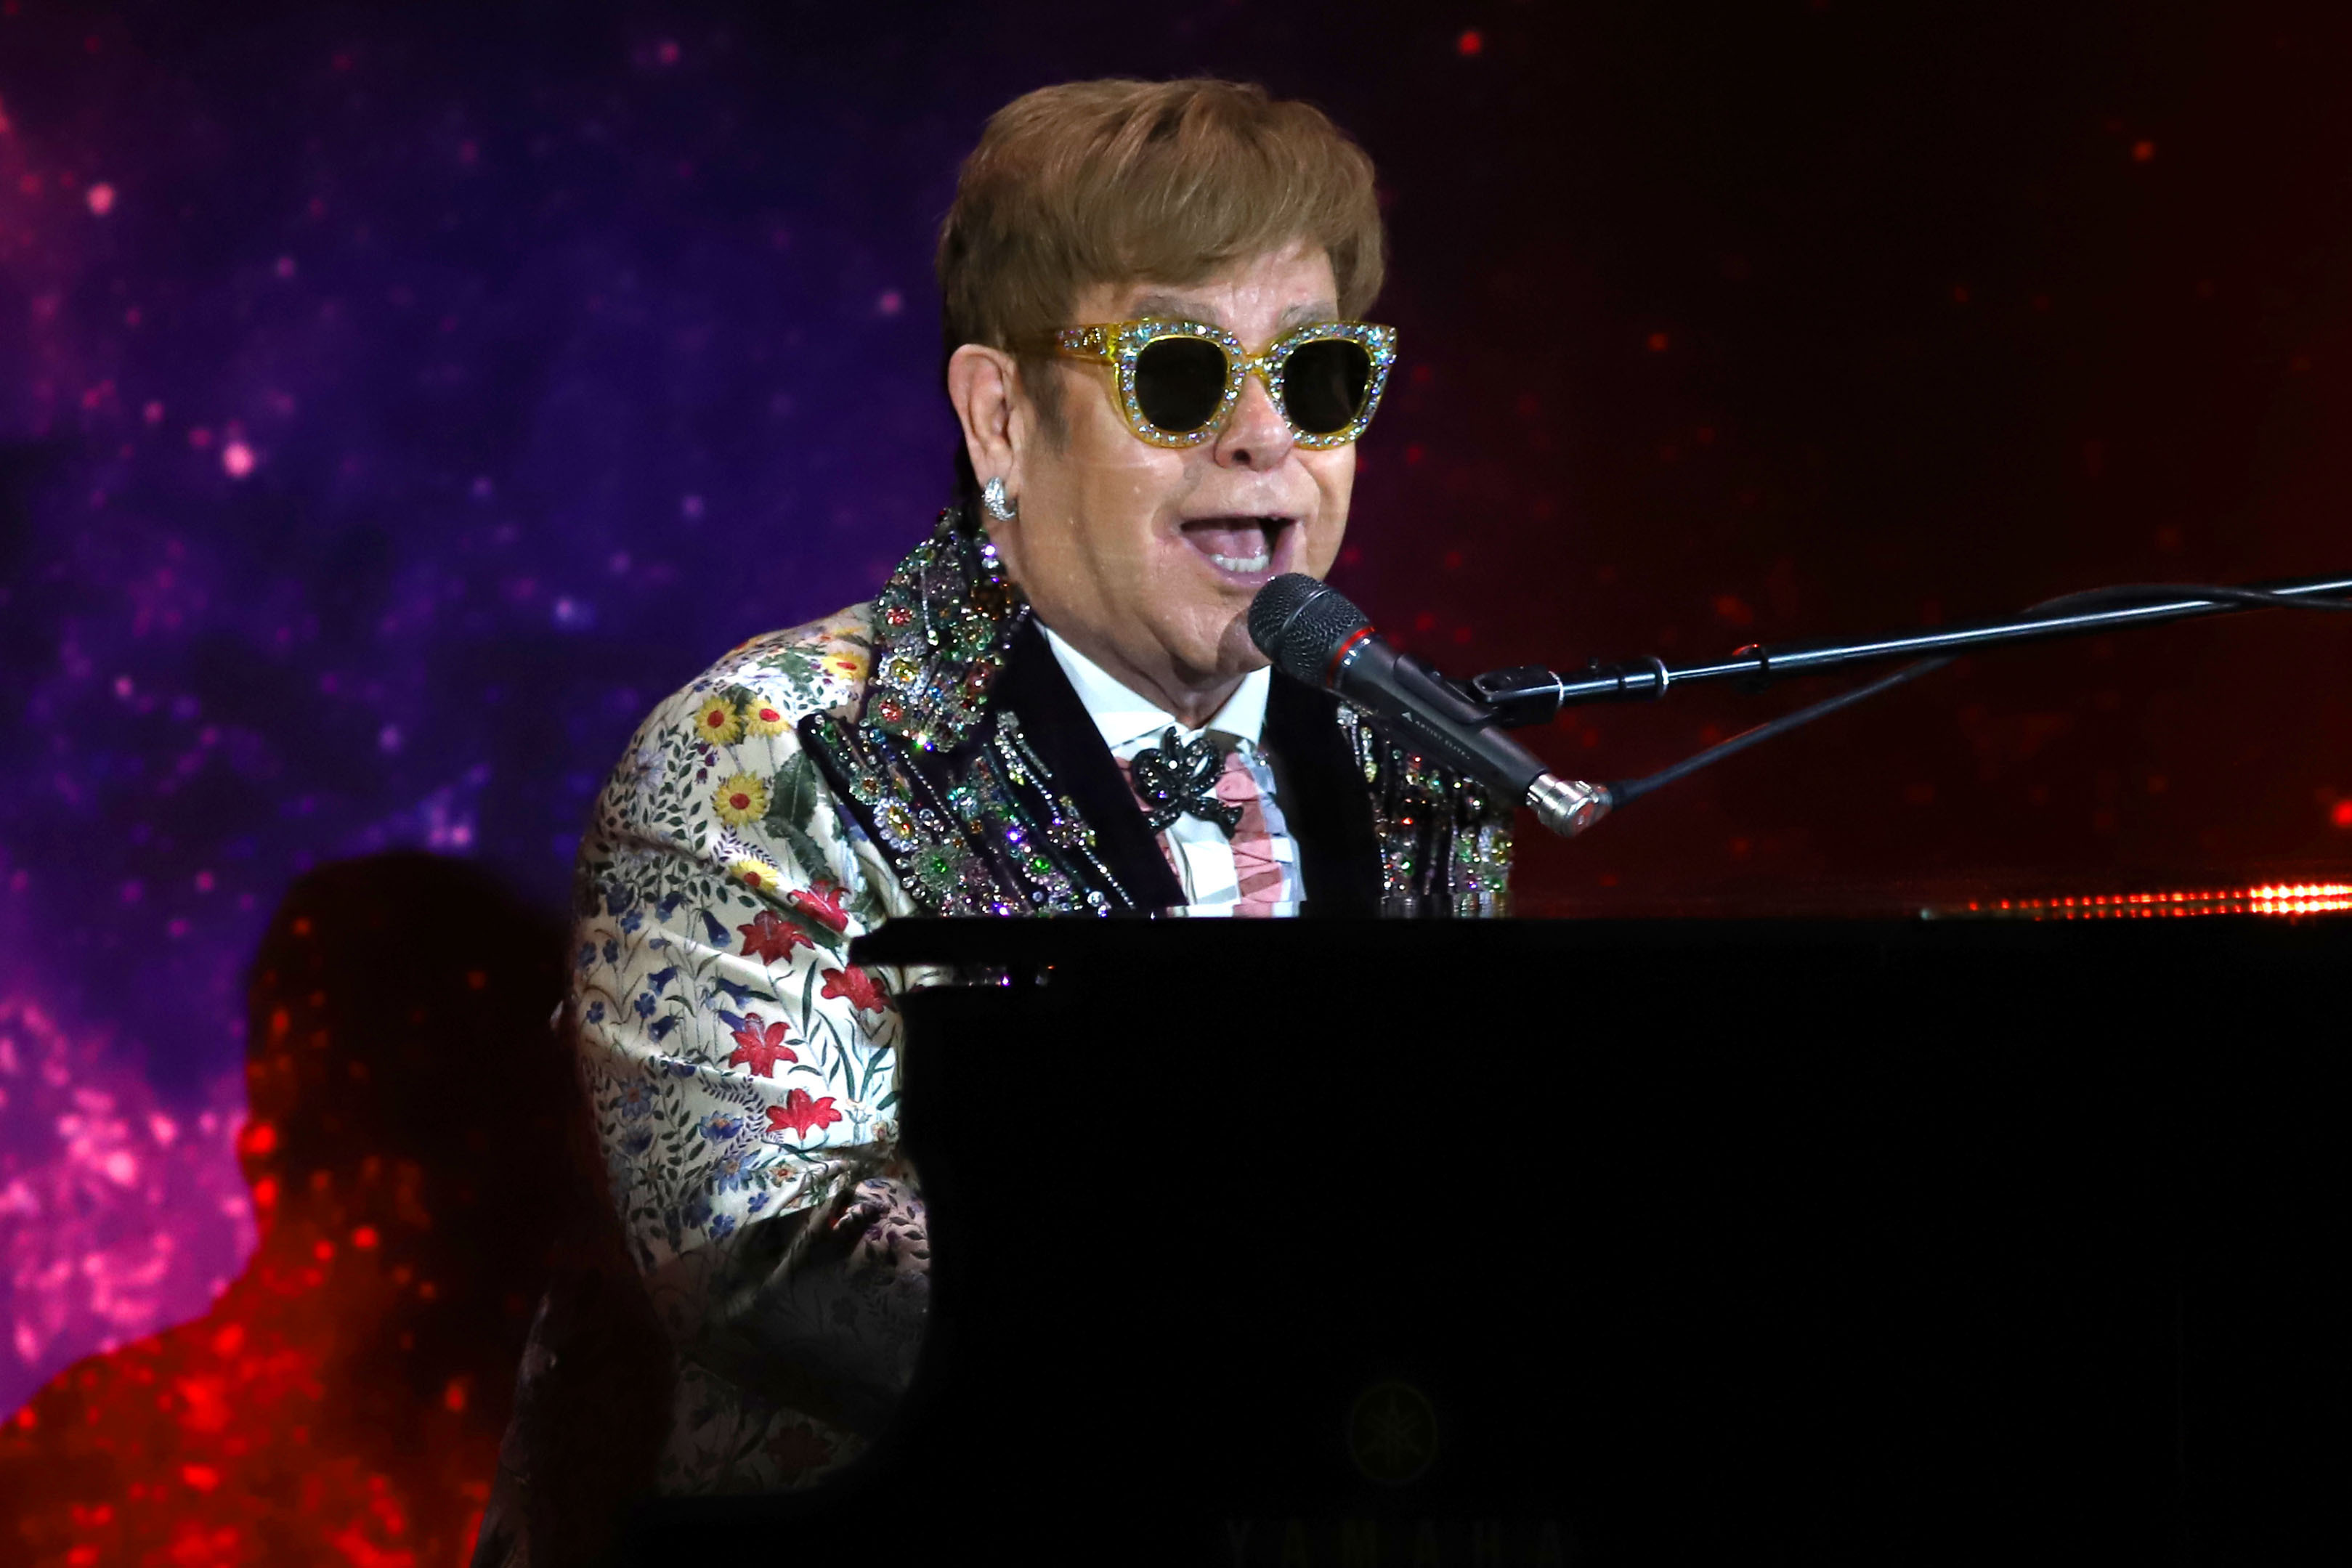 Elton John Bringing Farewell Tour To Bryce Jordan Center